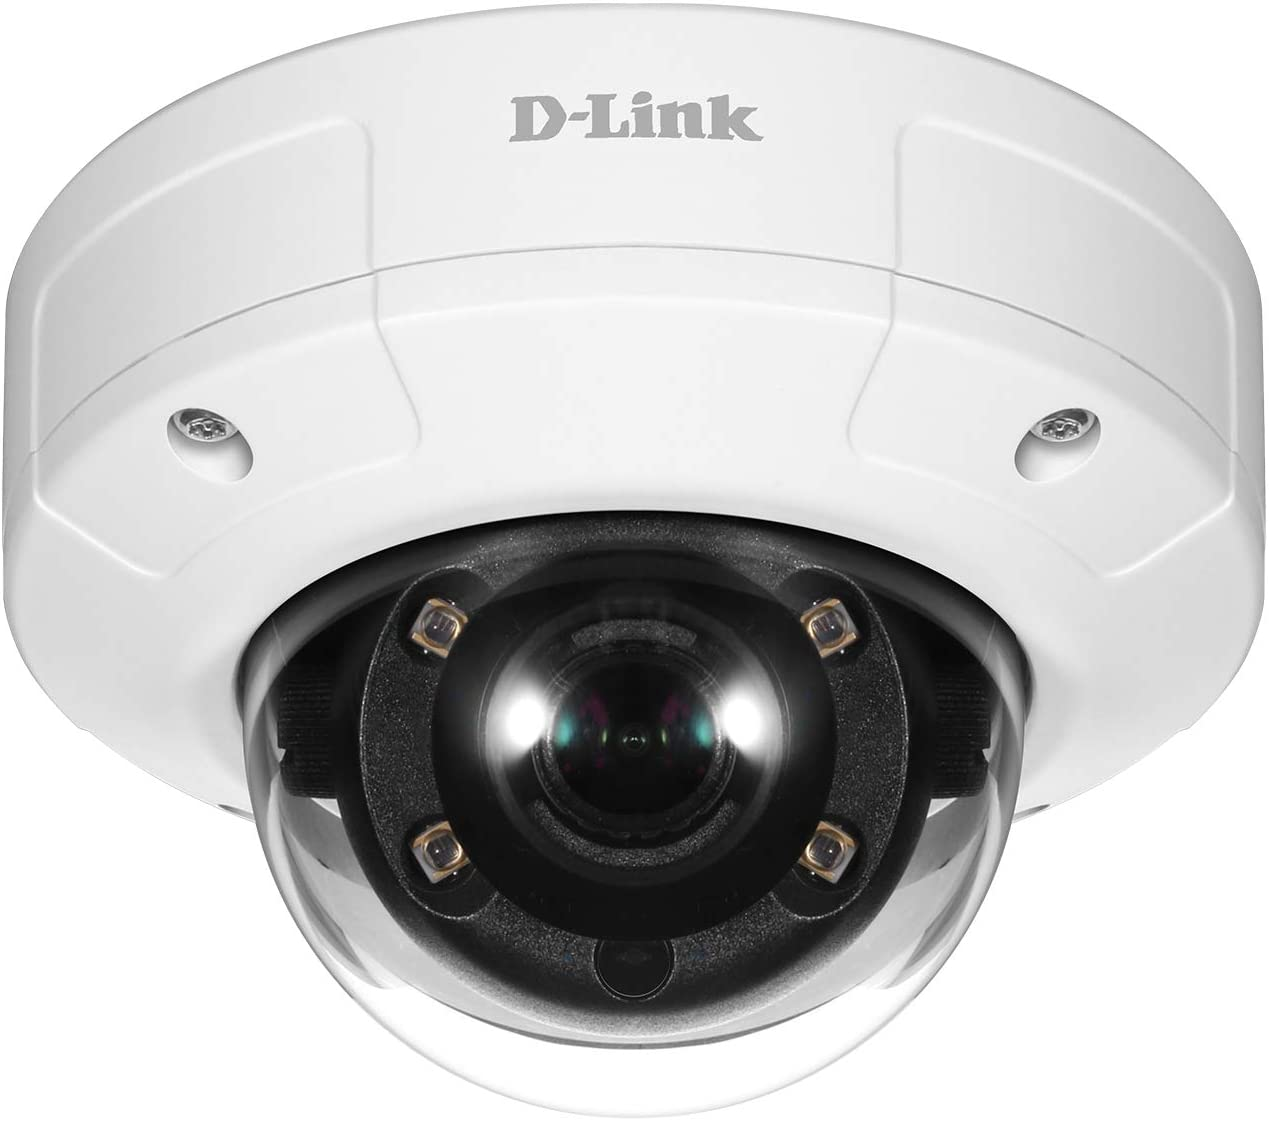 D-Link Security Outdoor Camera, Vigilance 2 Full HD, Motion Detection & Night Vision, Fast Ethernet Port PoE Local and Cloud Recording (DCS-4602EV-VB1)